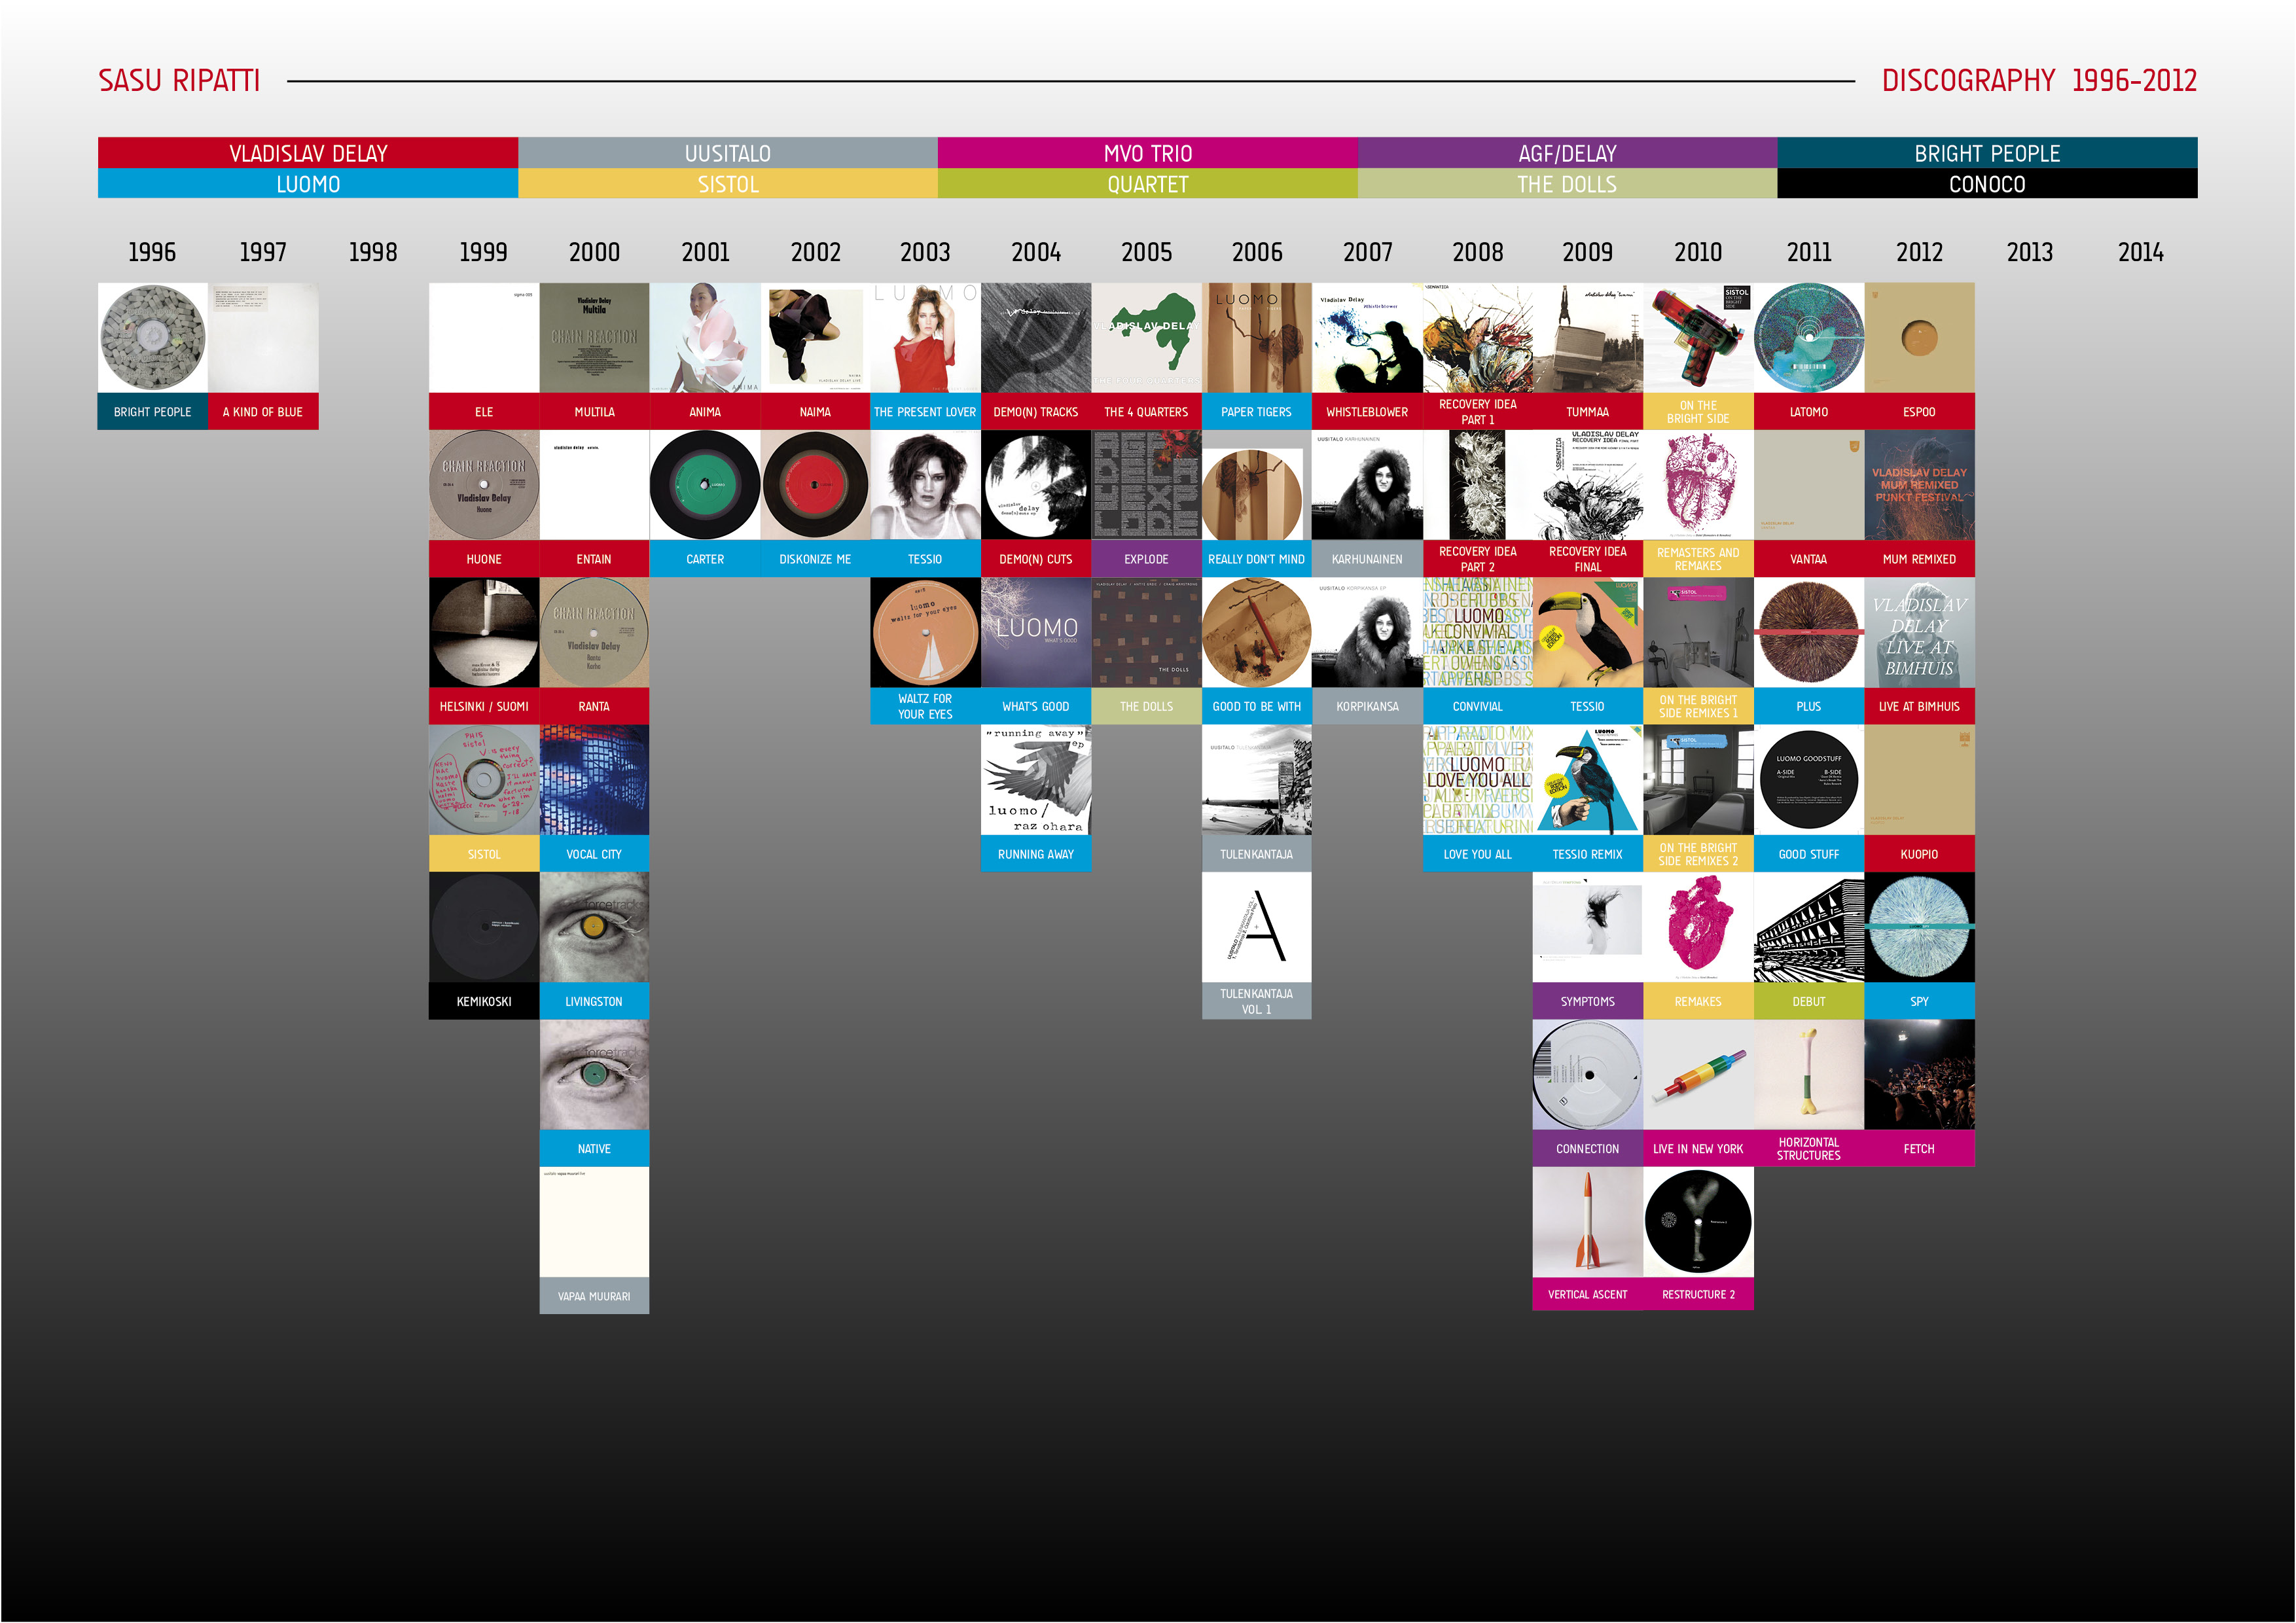 Discography_1996-2012